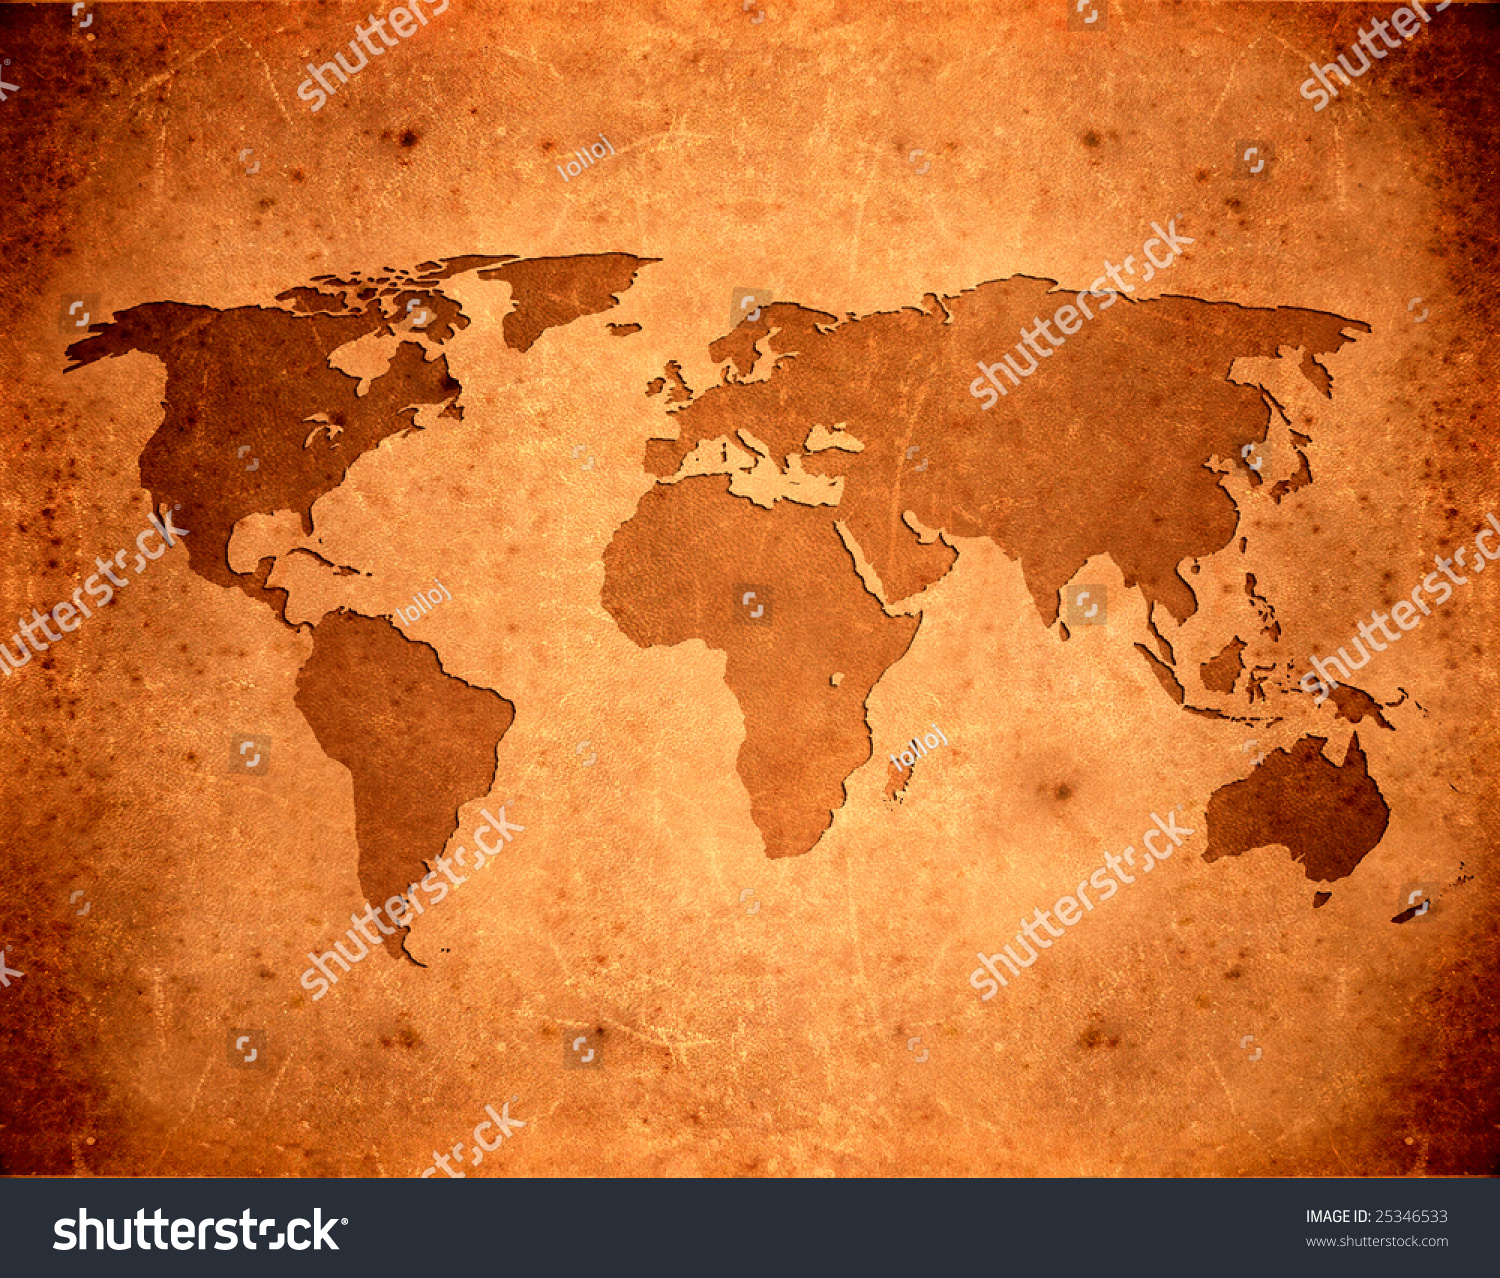 Brown leather aged grunge world map stock illustration 25346533 brown leather aged grunge world map gumiabroncs Gallery